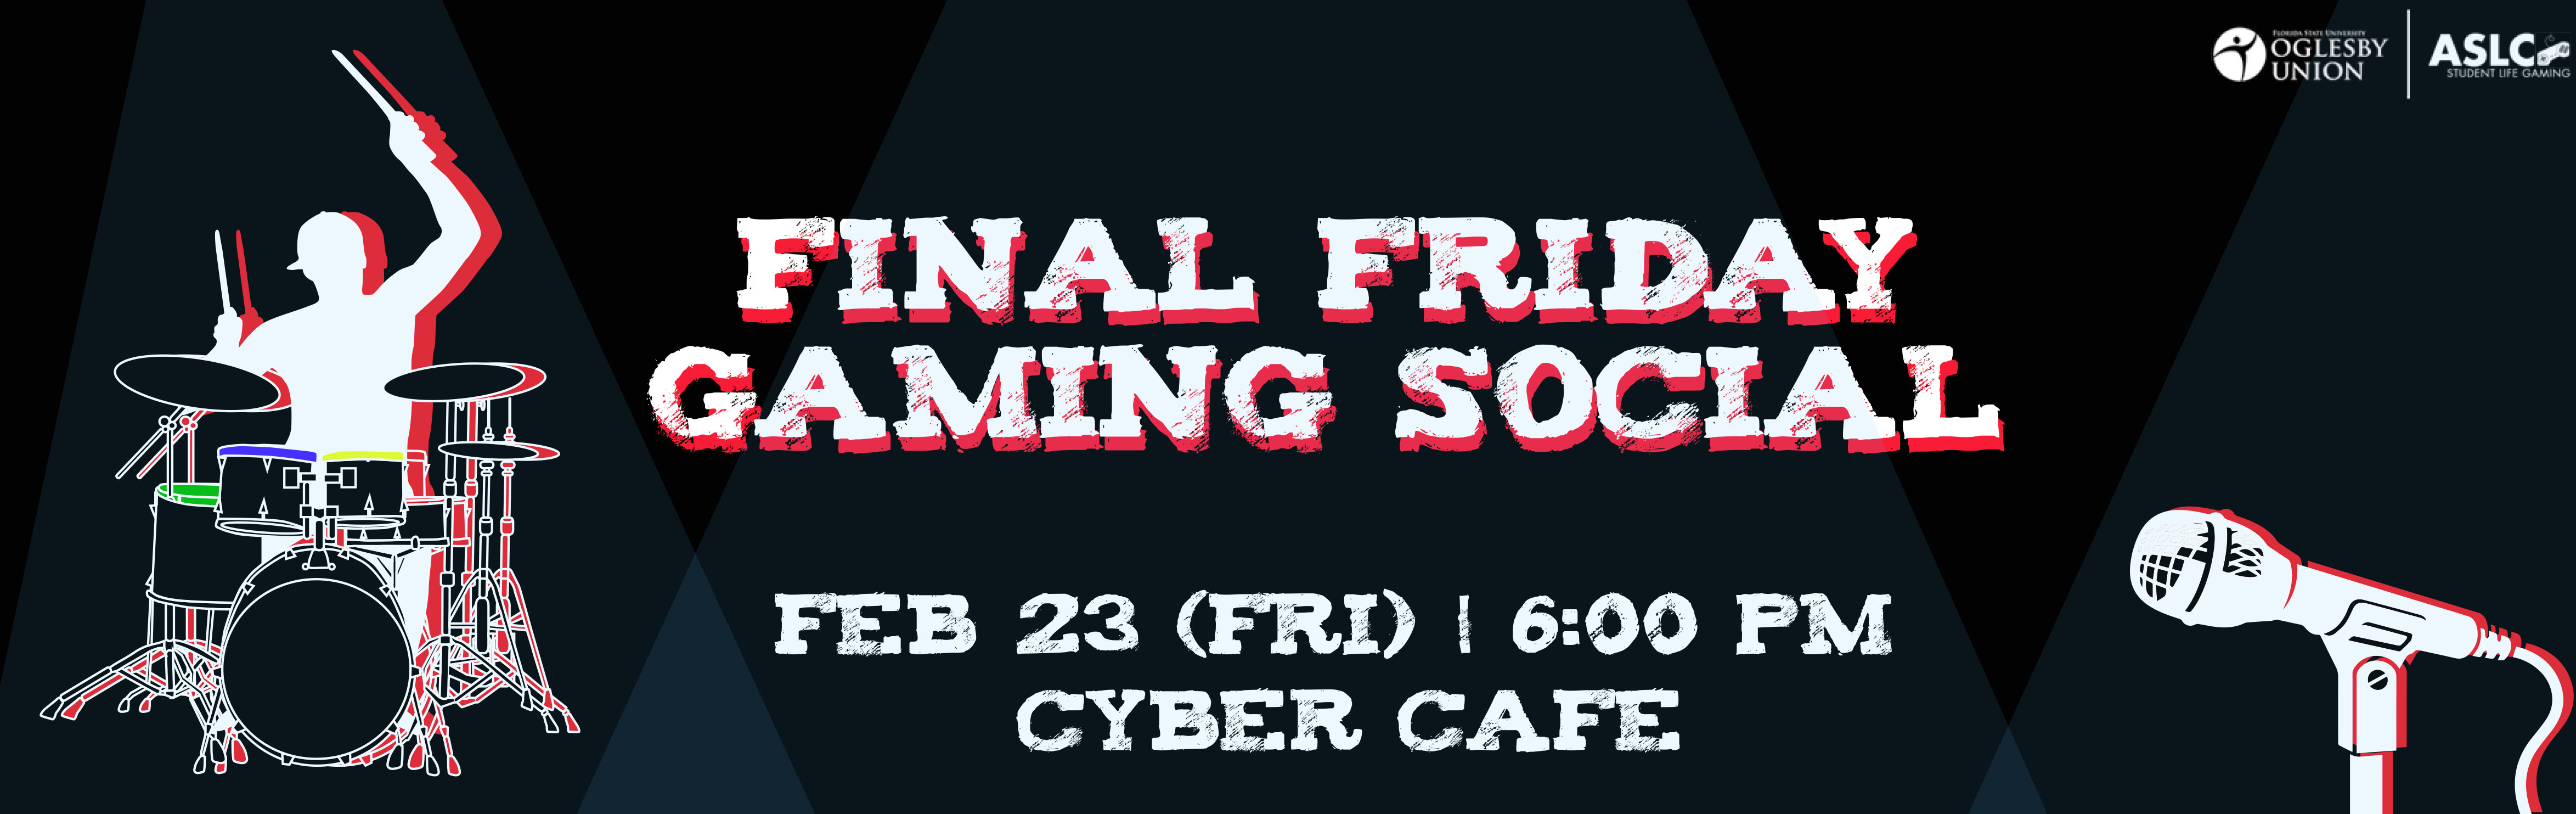 Final Fridays Gaming Social